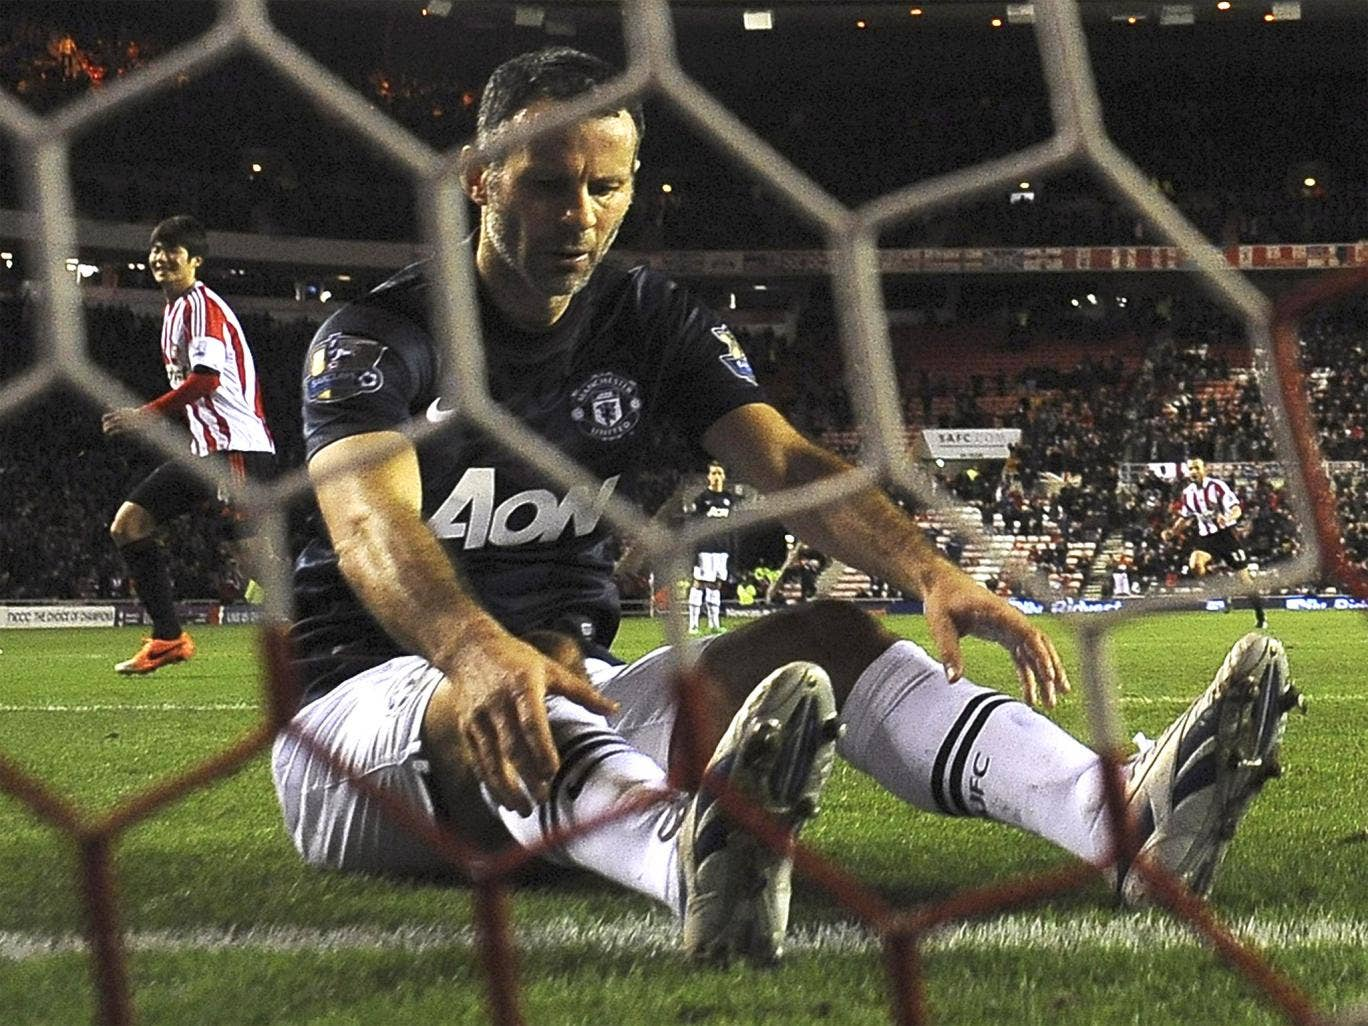 Ryan Giggs looks downcast after scoring an own goal in Manchester United's defeat against Sunderland at the Stadium of Light